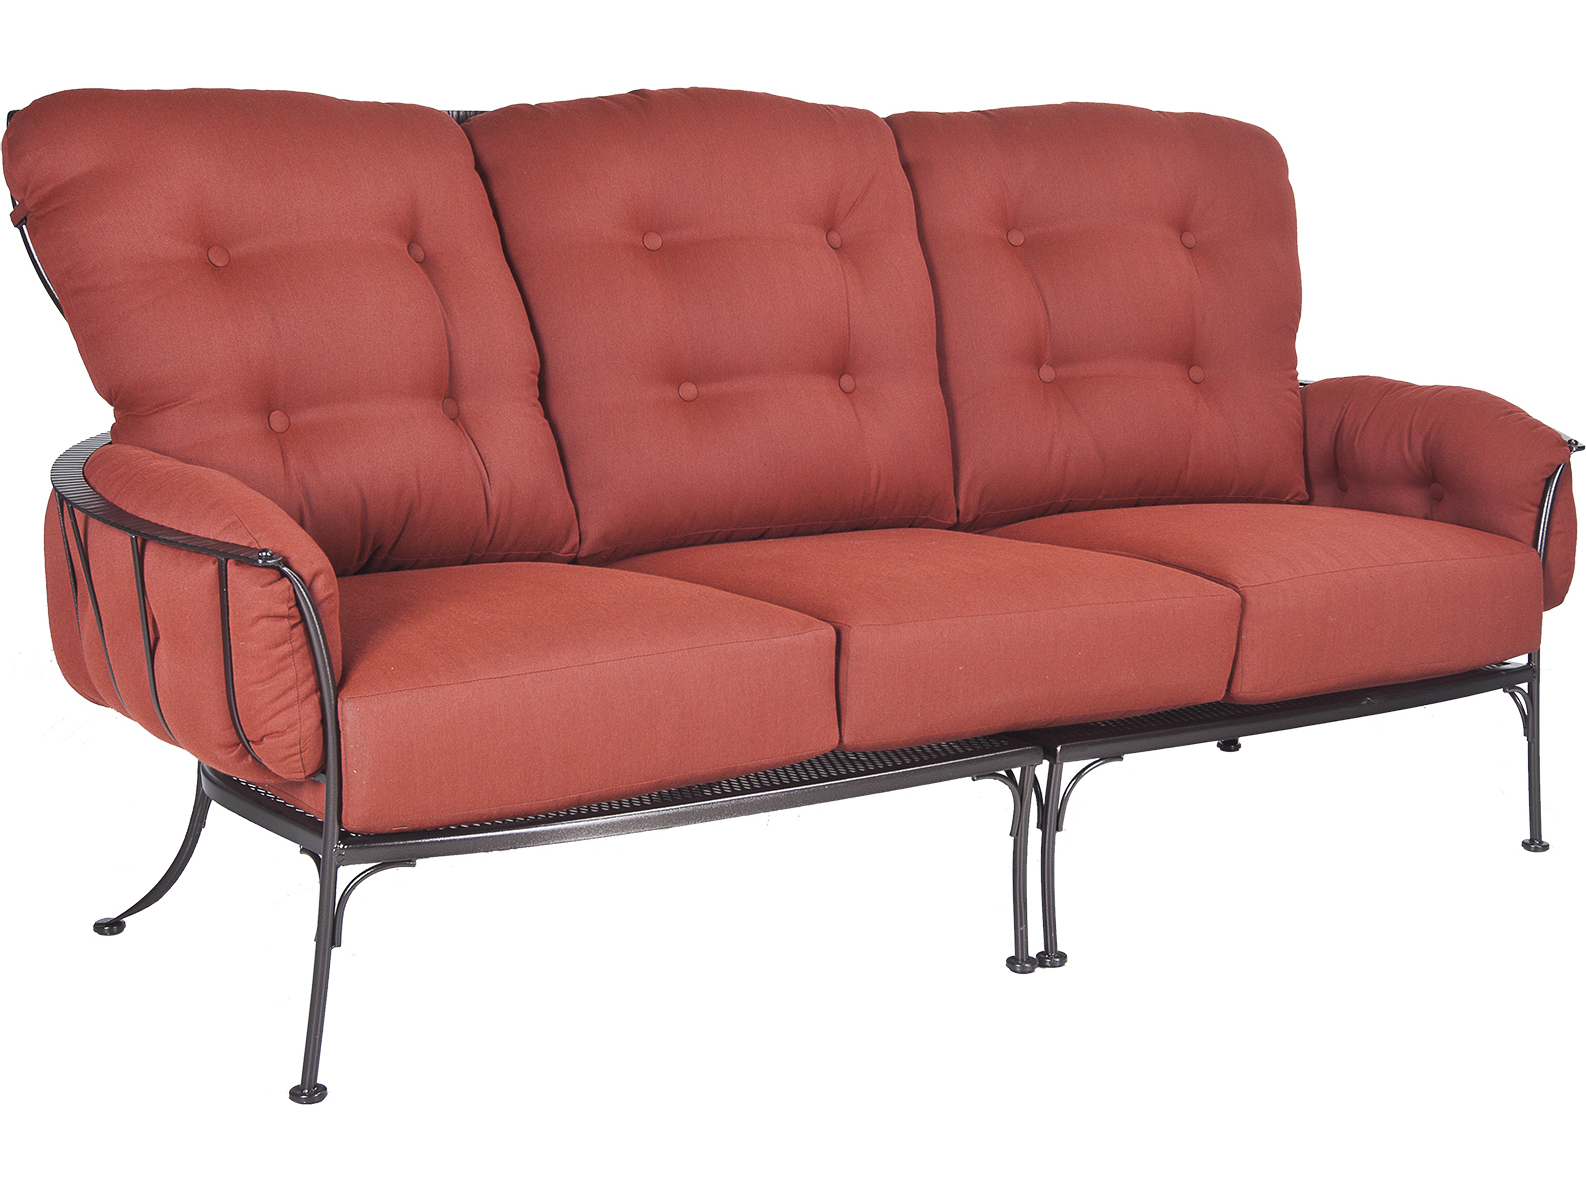 wrought iron sofa set in pune beds on finance ow lee monterra ow4273s